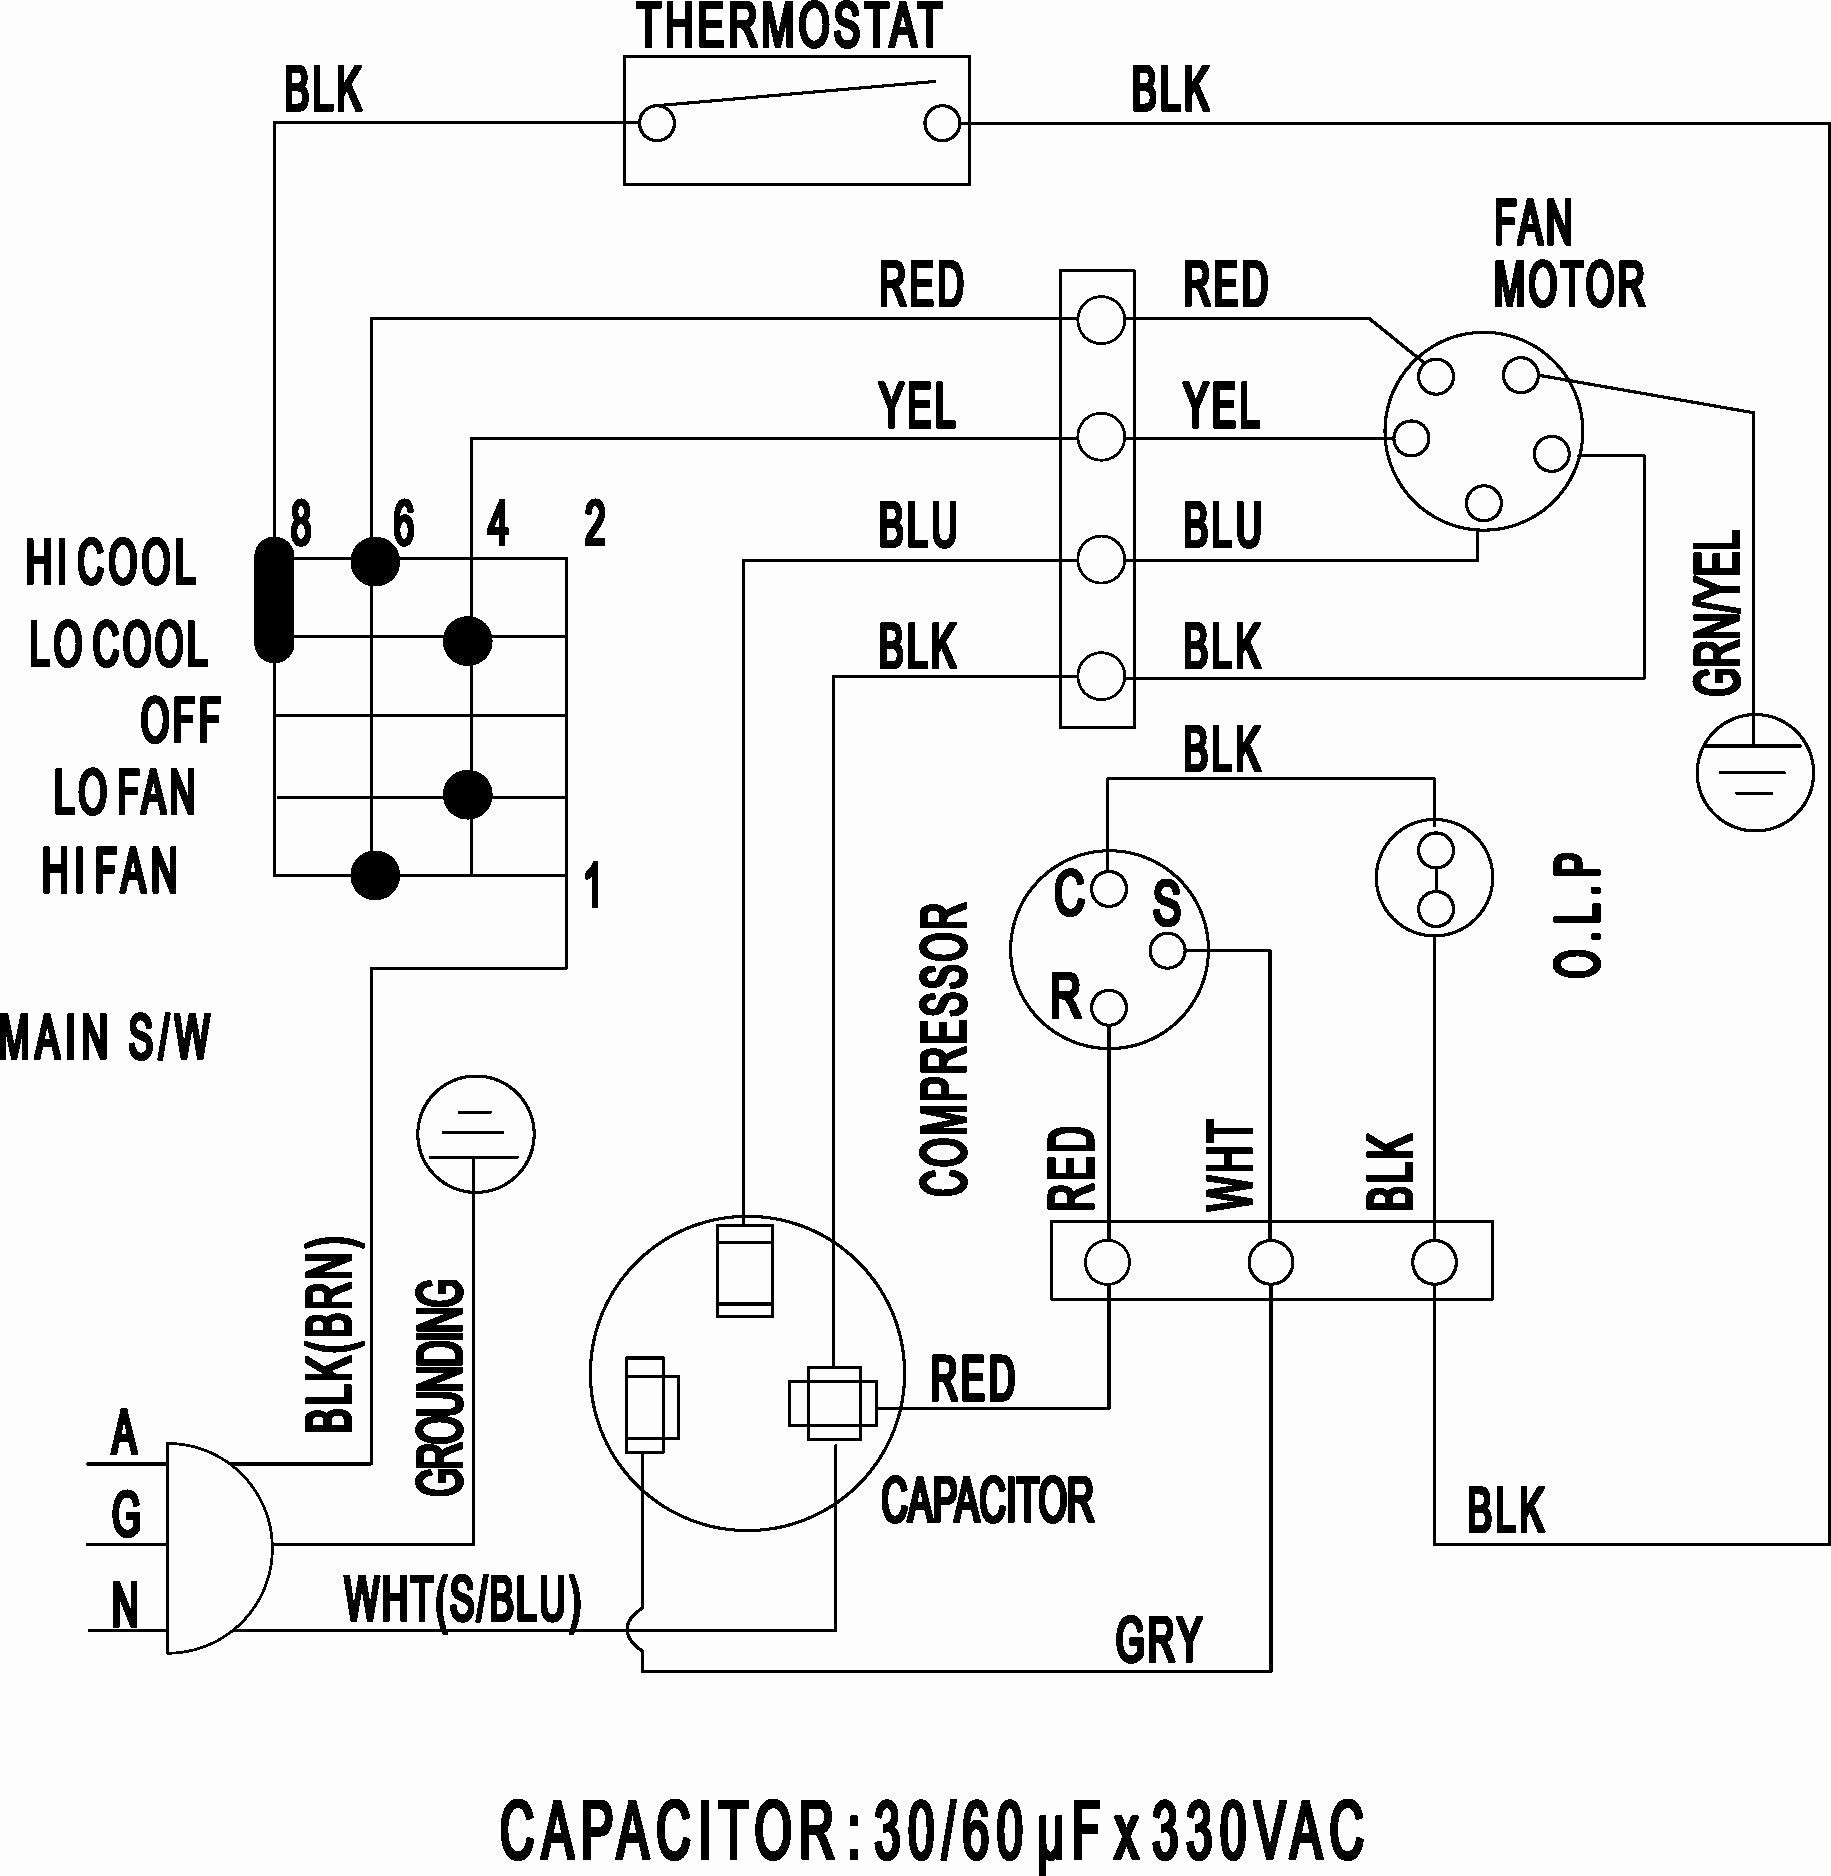 hight resolution of carrier hvac wiring diagrams wiring diagram schematic carrier split ac wiring diagram pdf carrier split type